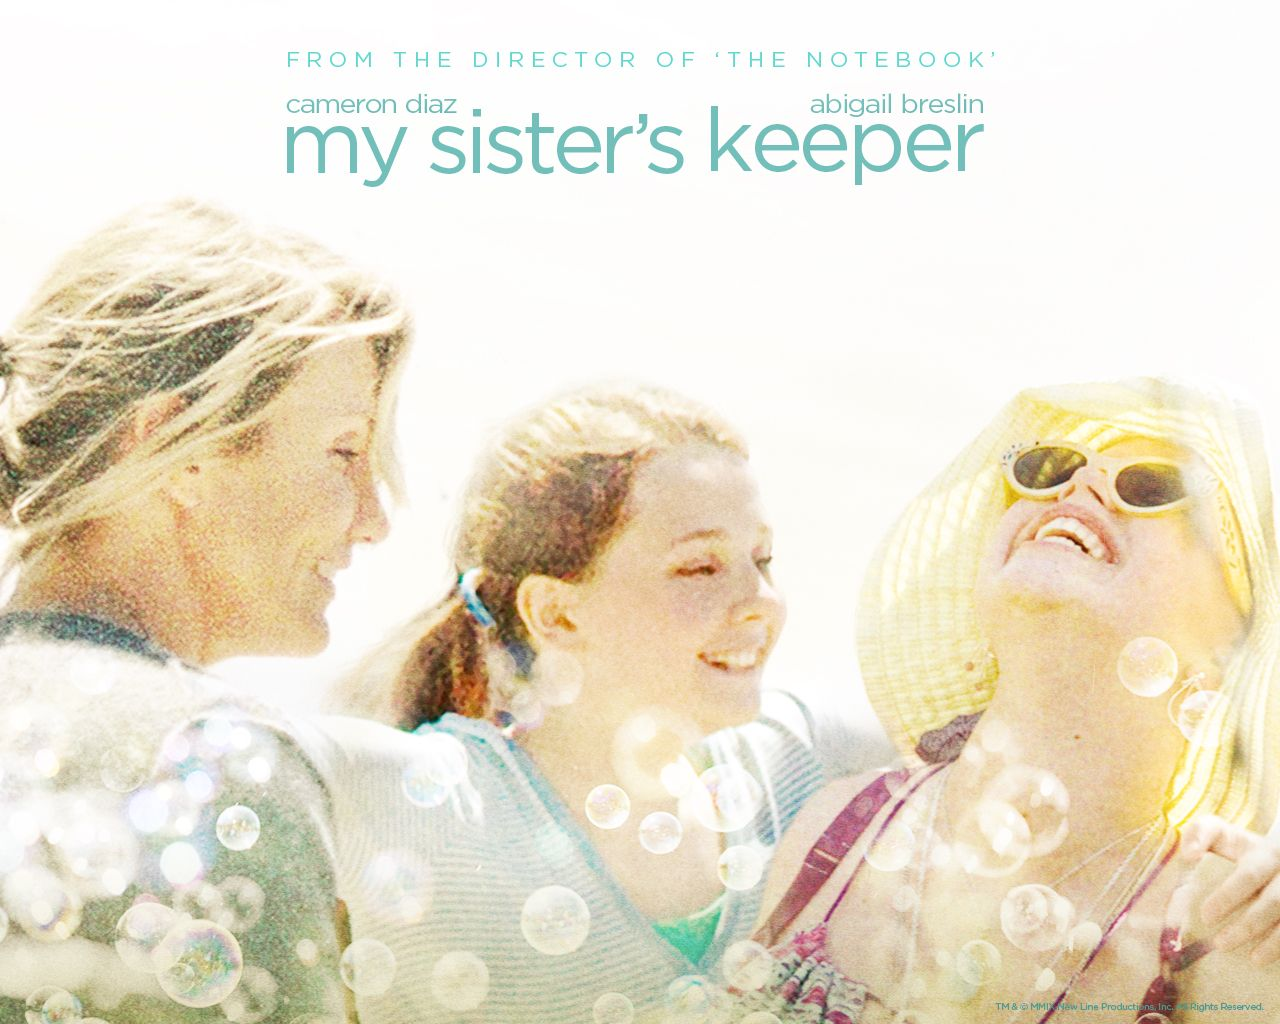 choosing sides in my sisters keeper a novel by jodi picoult Written by jodi picoult, narrated by richard poe, julia gibson, barbara mcculloh , tom  1 credit/month after trial – good for any book, any price  first time in her  high-profile career, ellie faces a system of justice very different from her own   once again, in my sister's keeper, jodi picoult tackles a controversial real-life.